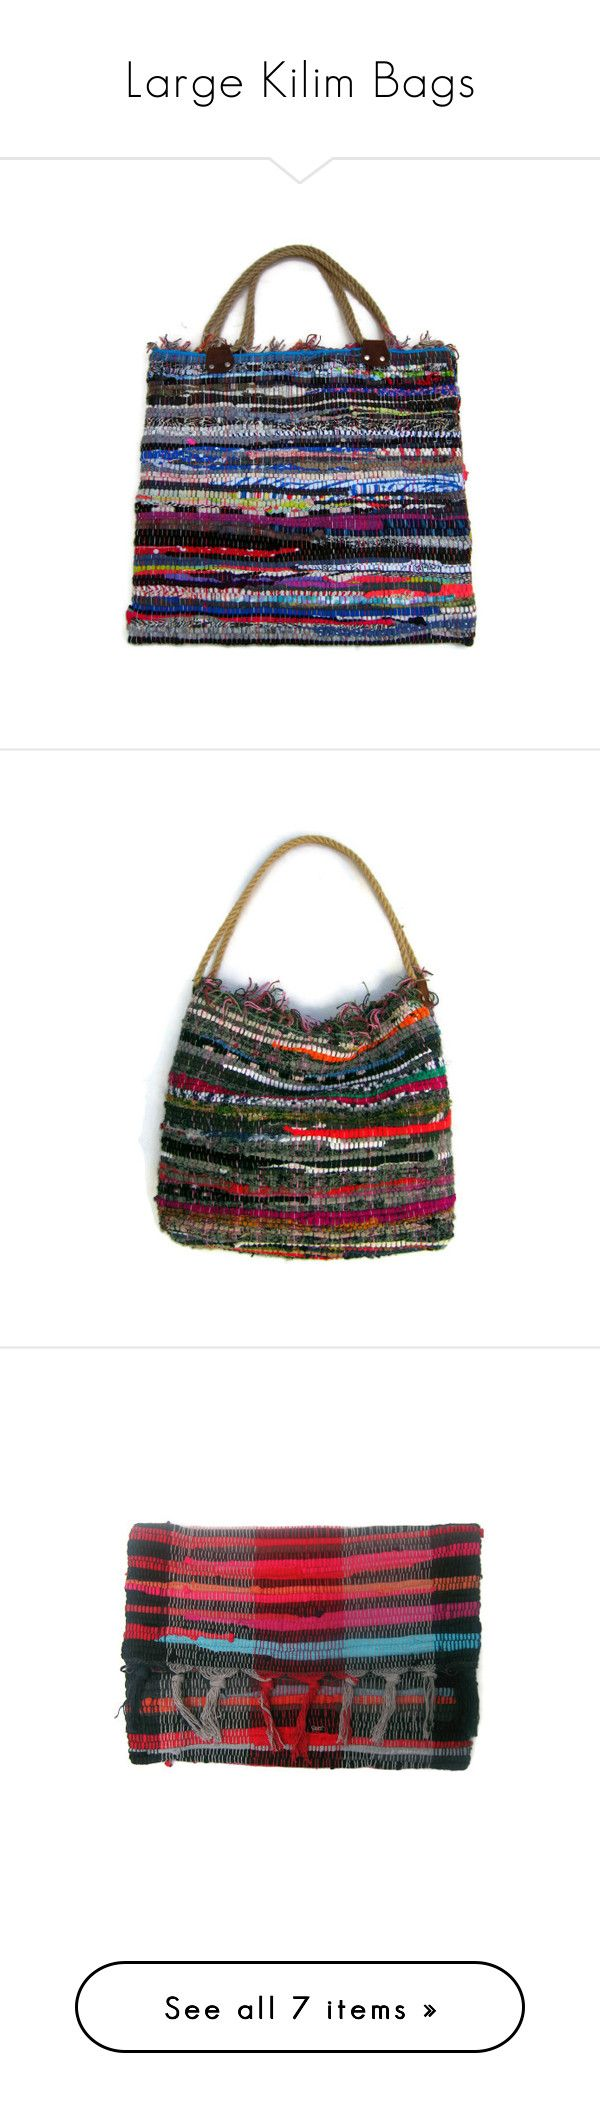 Large Kilim Bags by maslindadesigns on Polyvore featuring women's fashion, bags, handbags, shoulder bags, bohemian shoulder bag, boho shoulder bag, boho handbag, bohemian purse and boho chic handbags